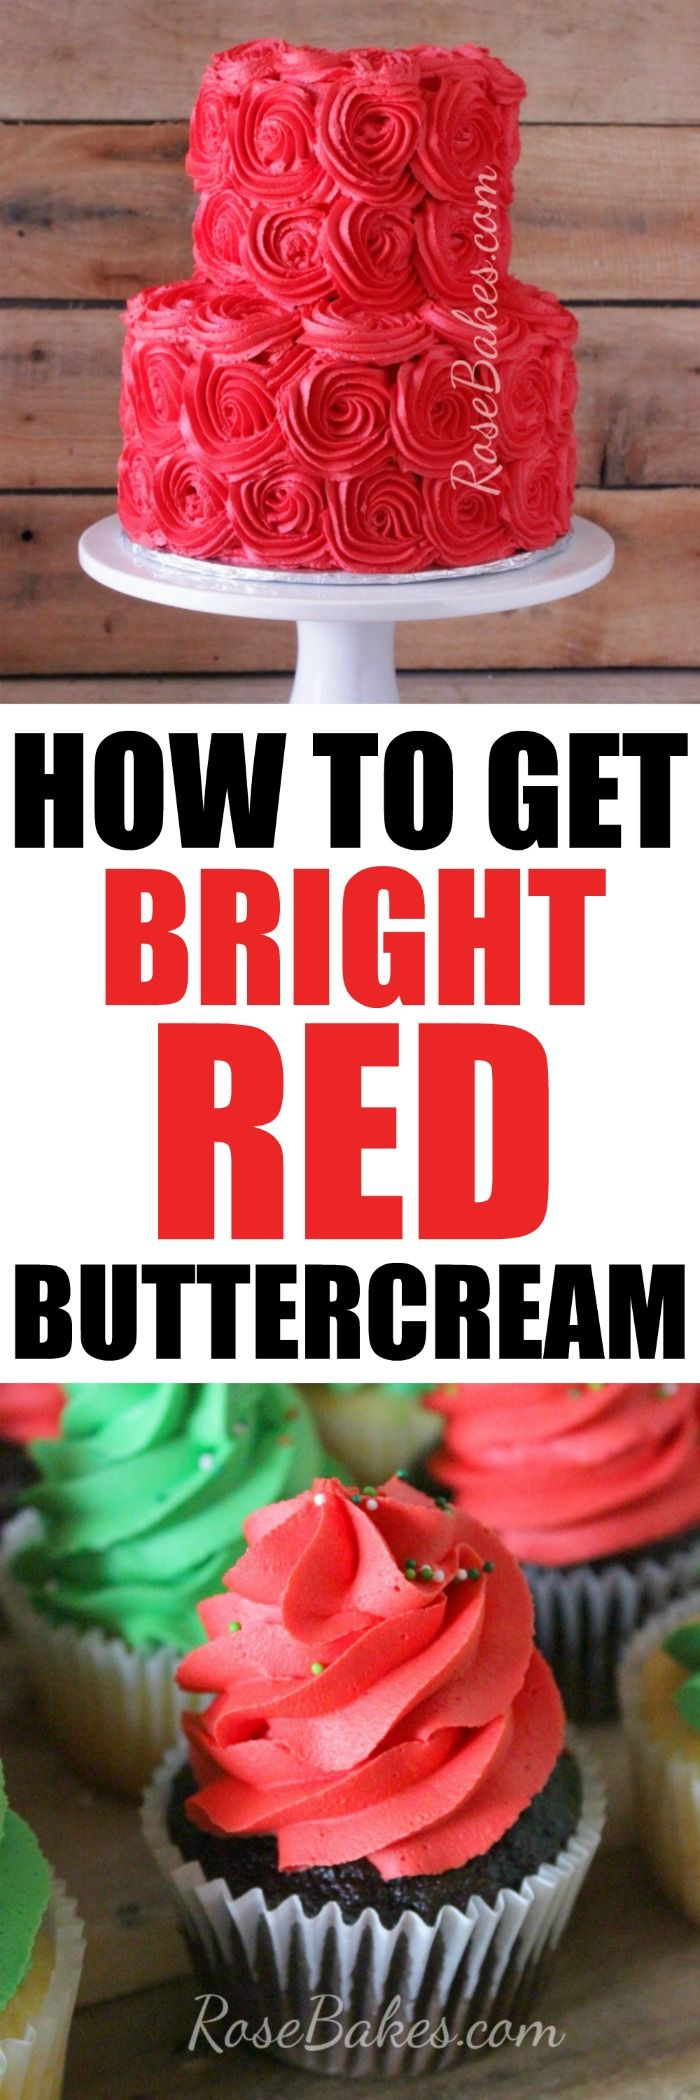 Tips on How to Get Bright Red Buttercream